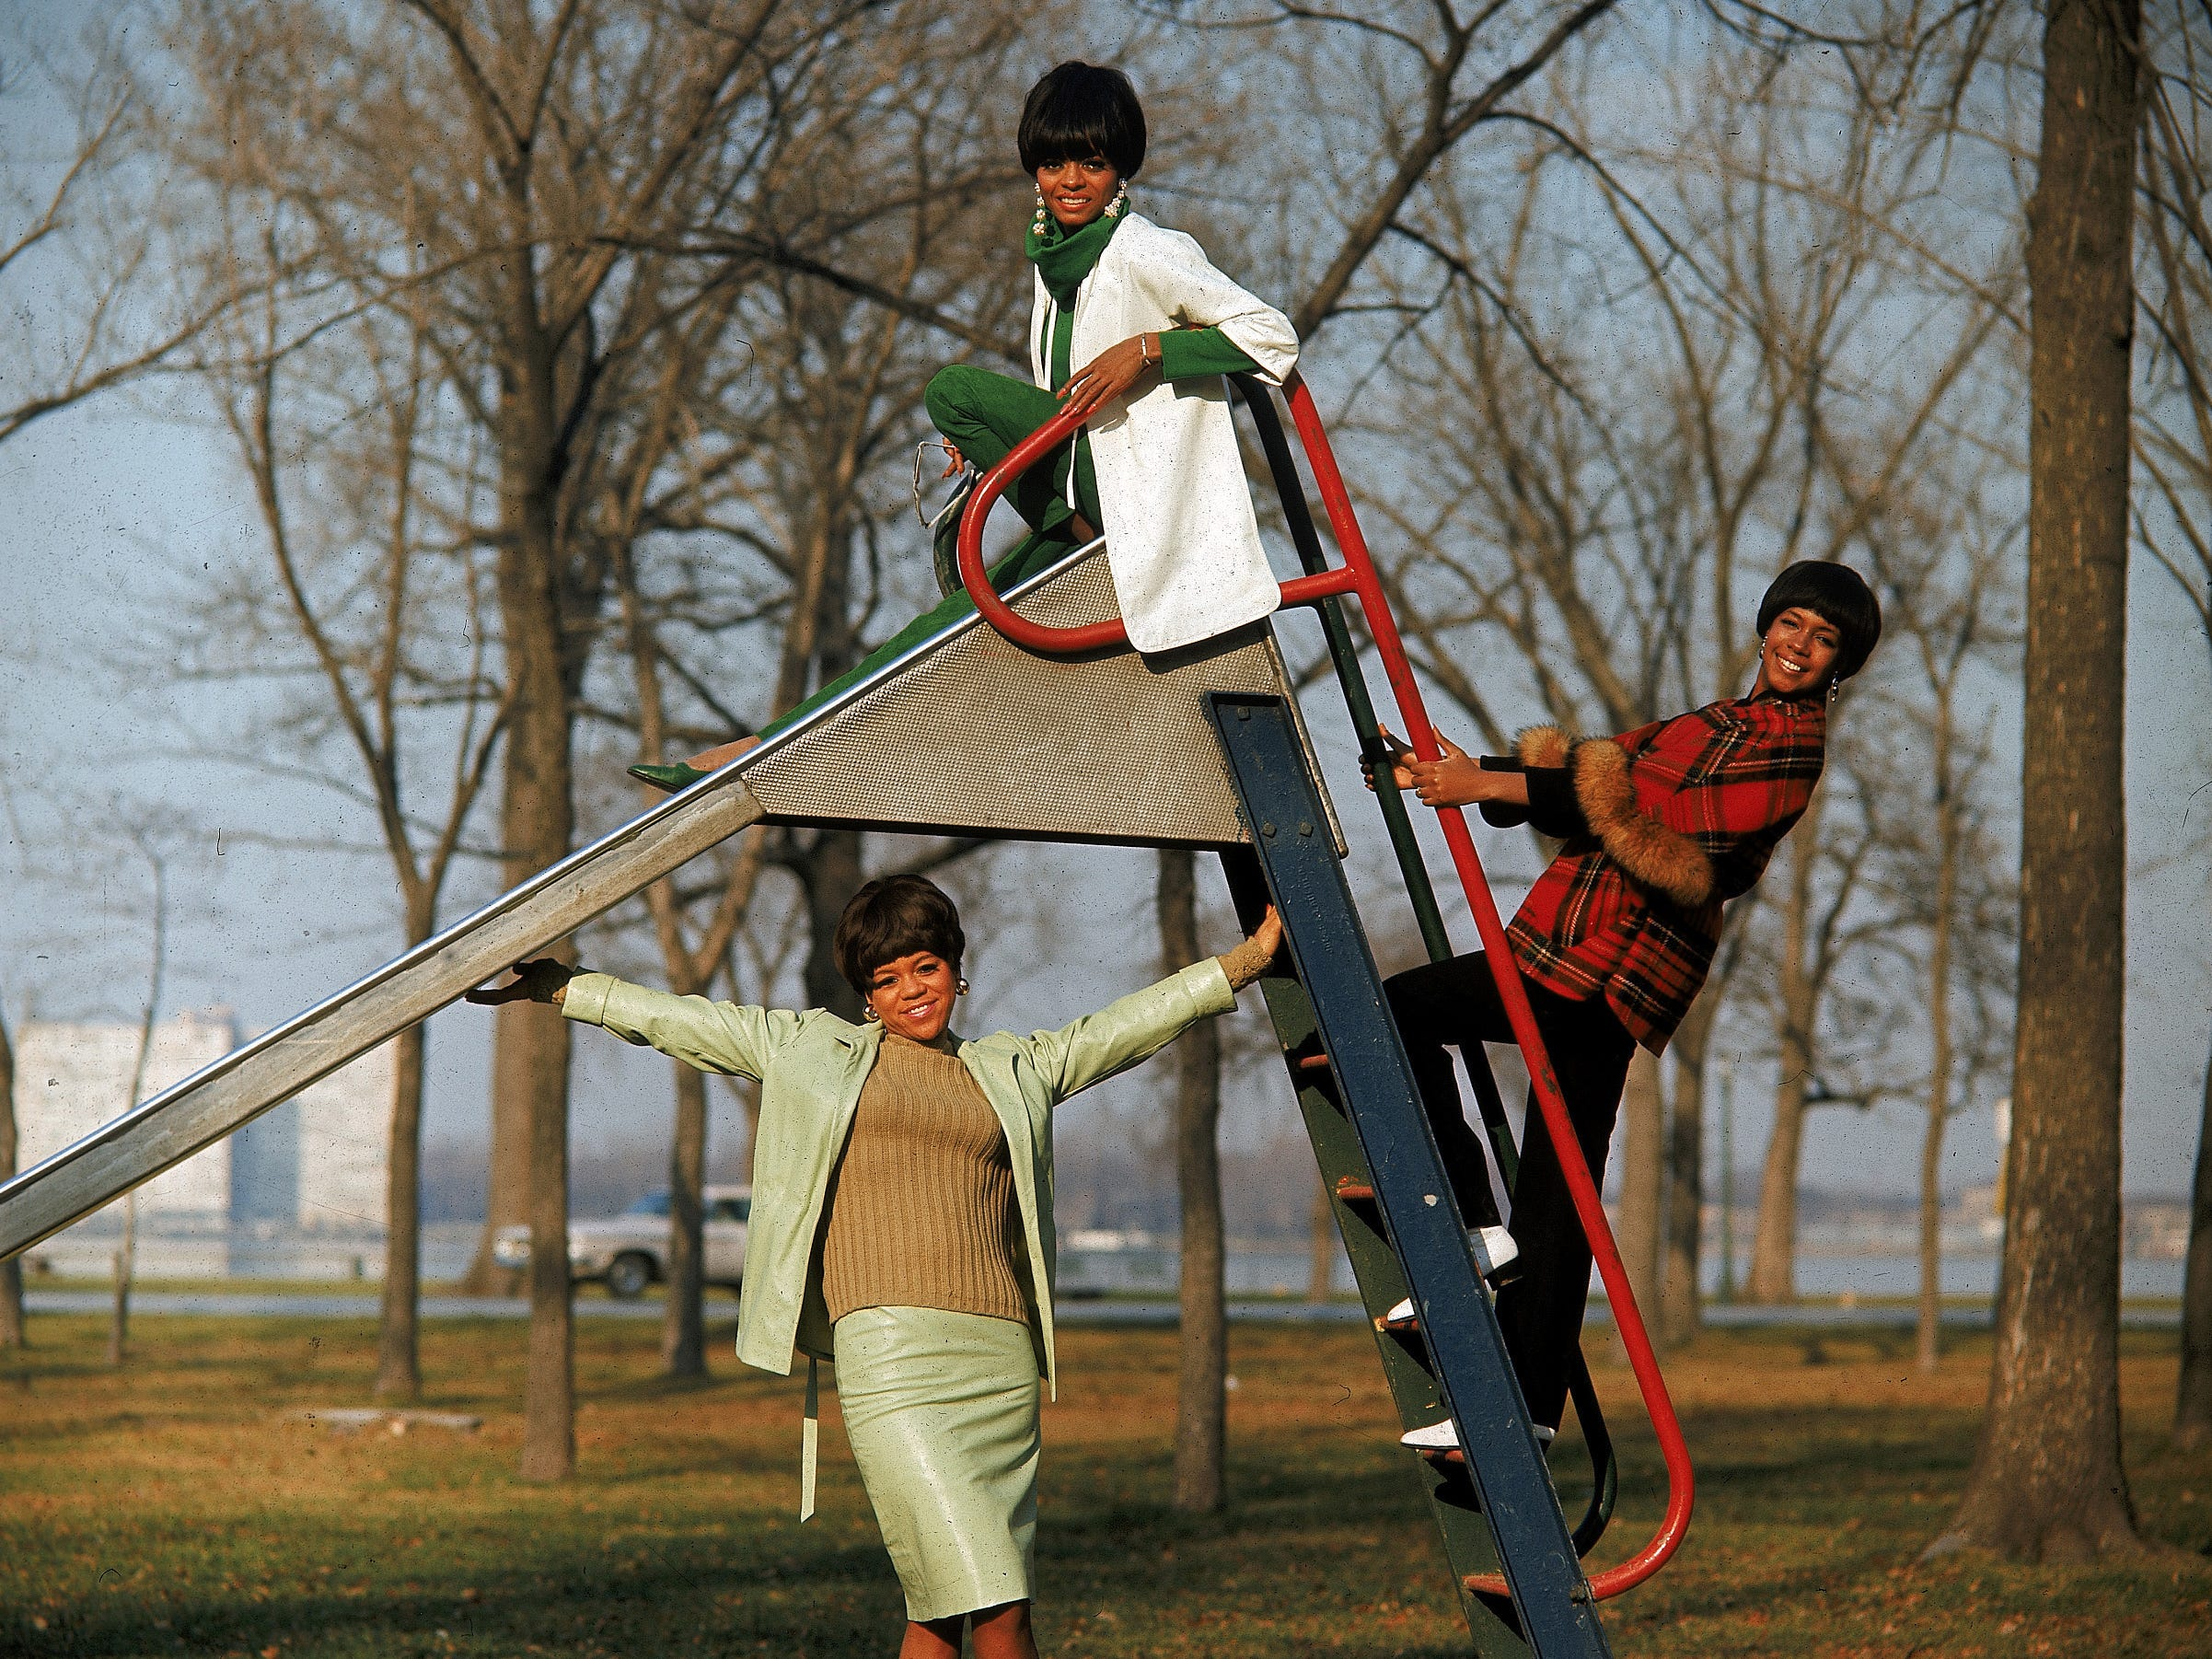 The Supremes pose on a slide in a Detroit park for a photo shoot on Aug. 19, 1966.